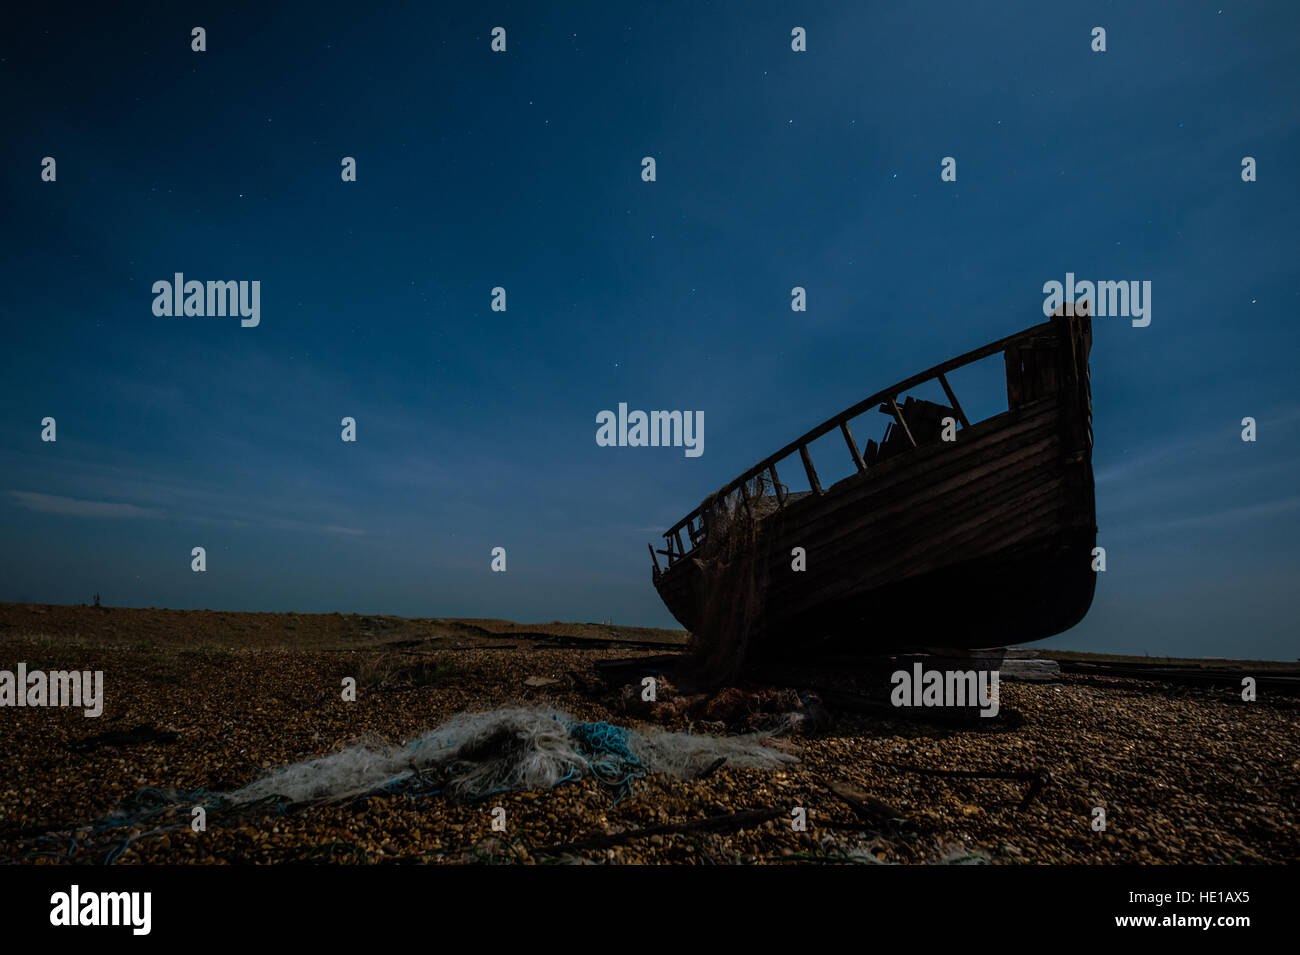 Old boat at night on Dungoness beach. Stock Photo